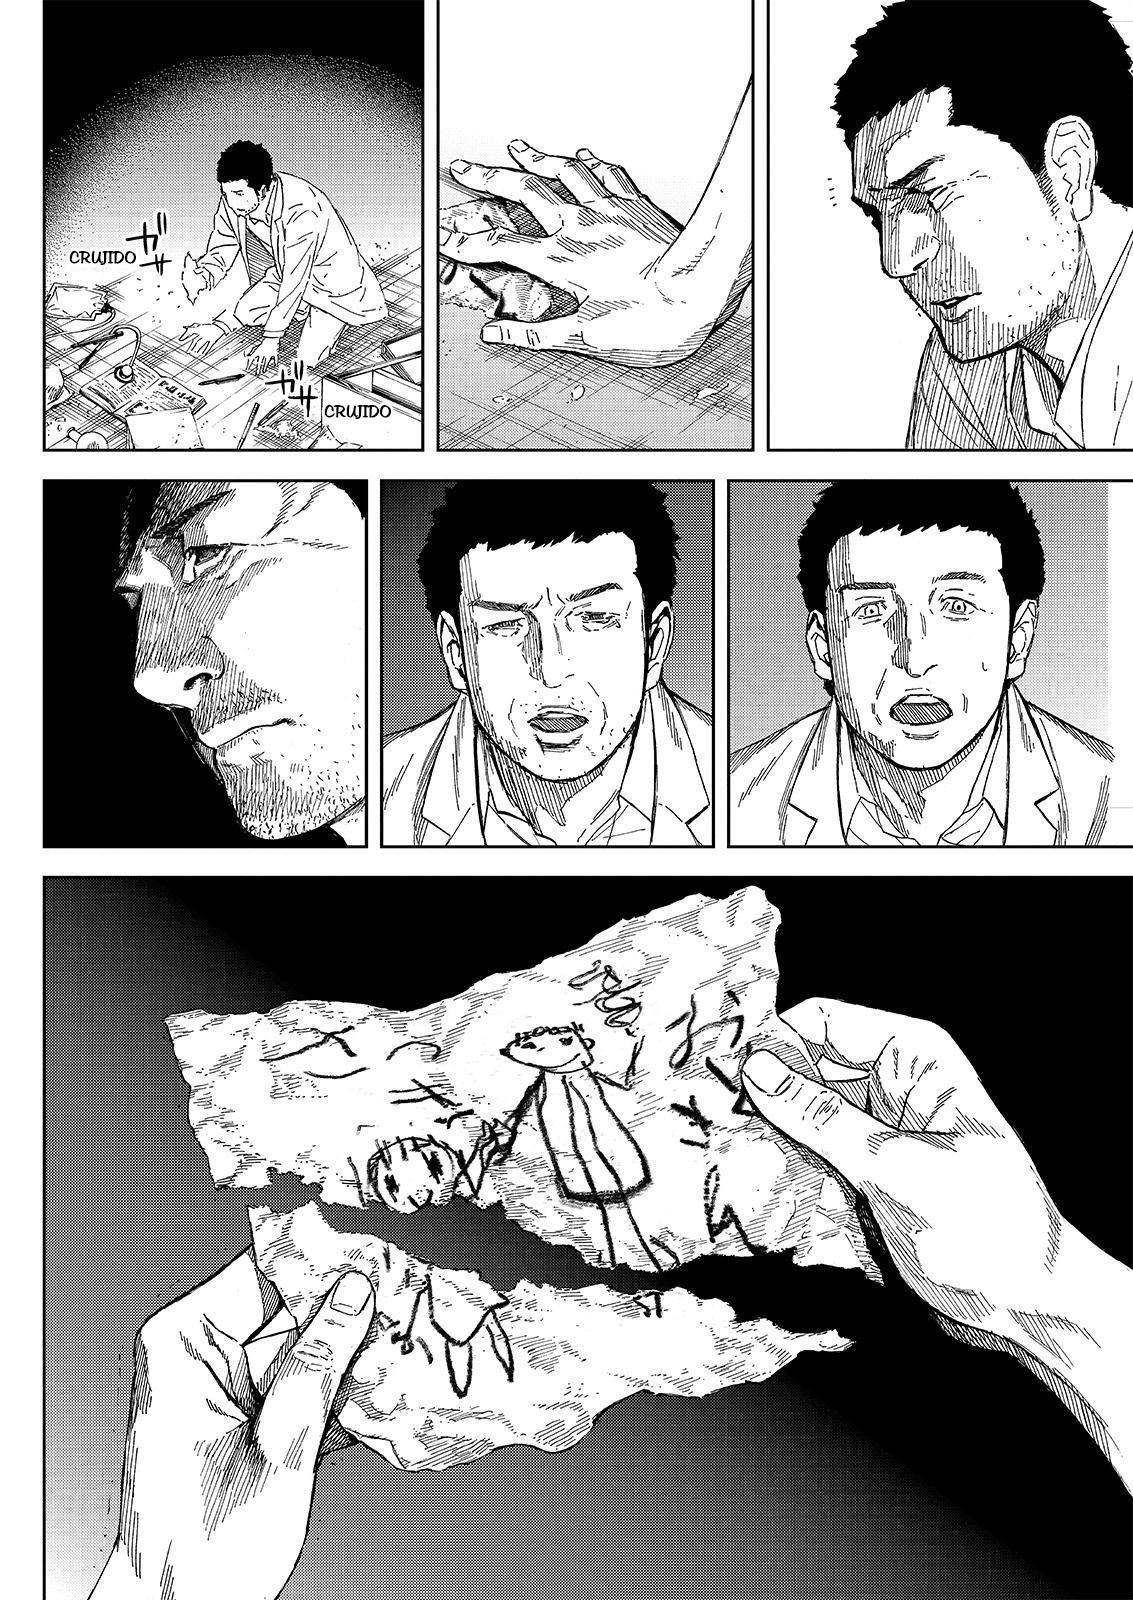 http://c5.ninemanga.com/es_manga/54/16310/423644/0021a9a08c31c28e487b5168d347c202.jpg Page 5